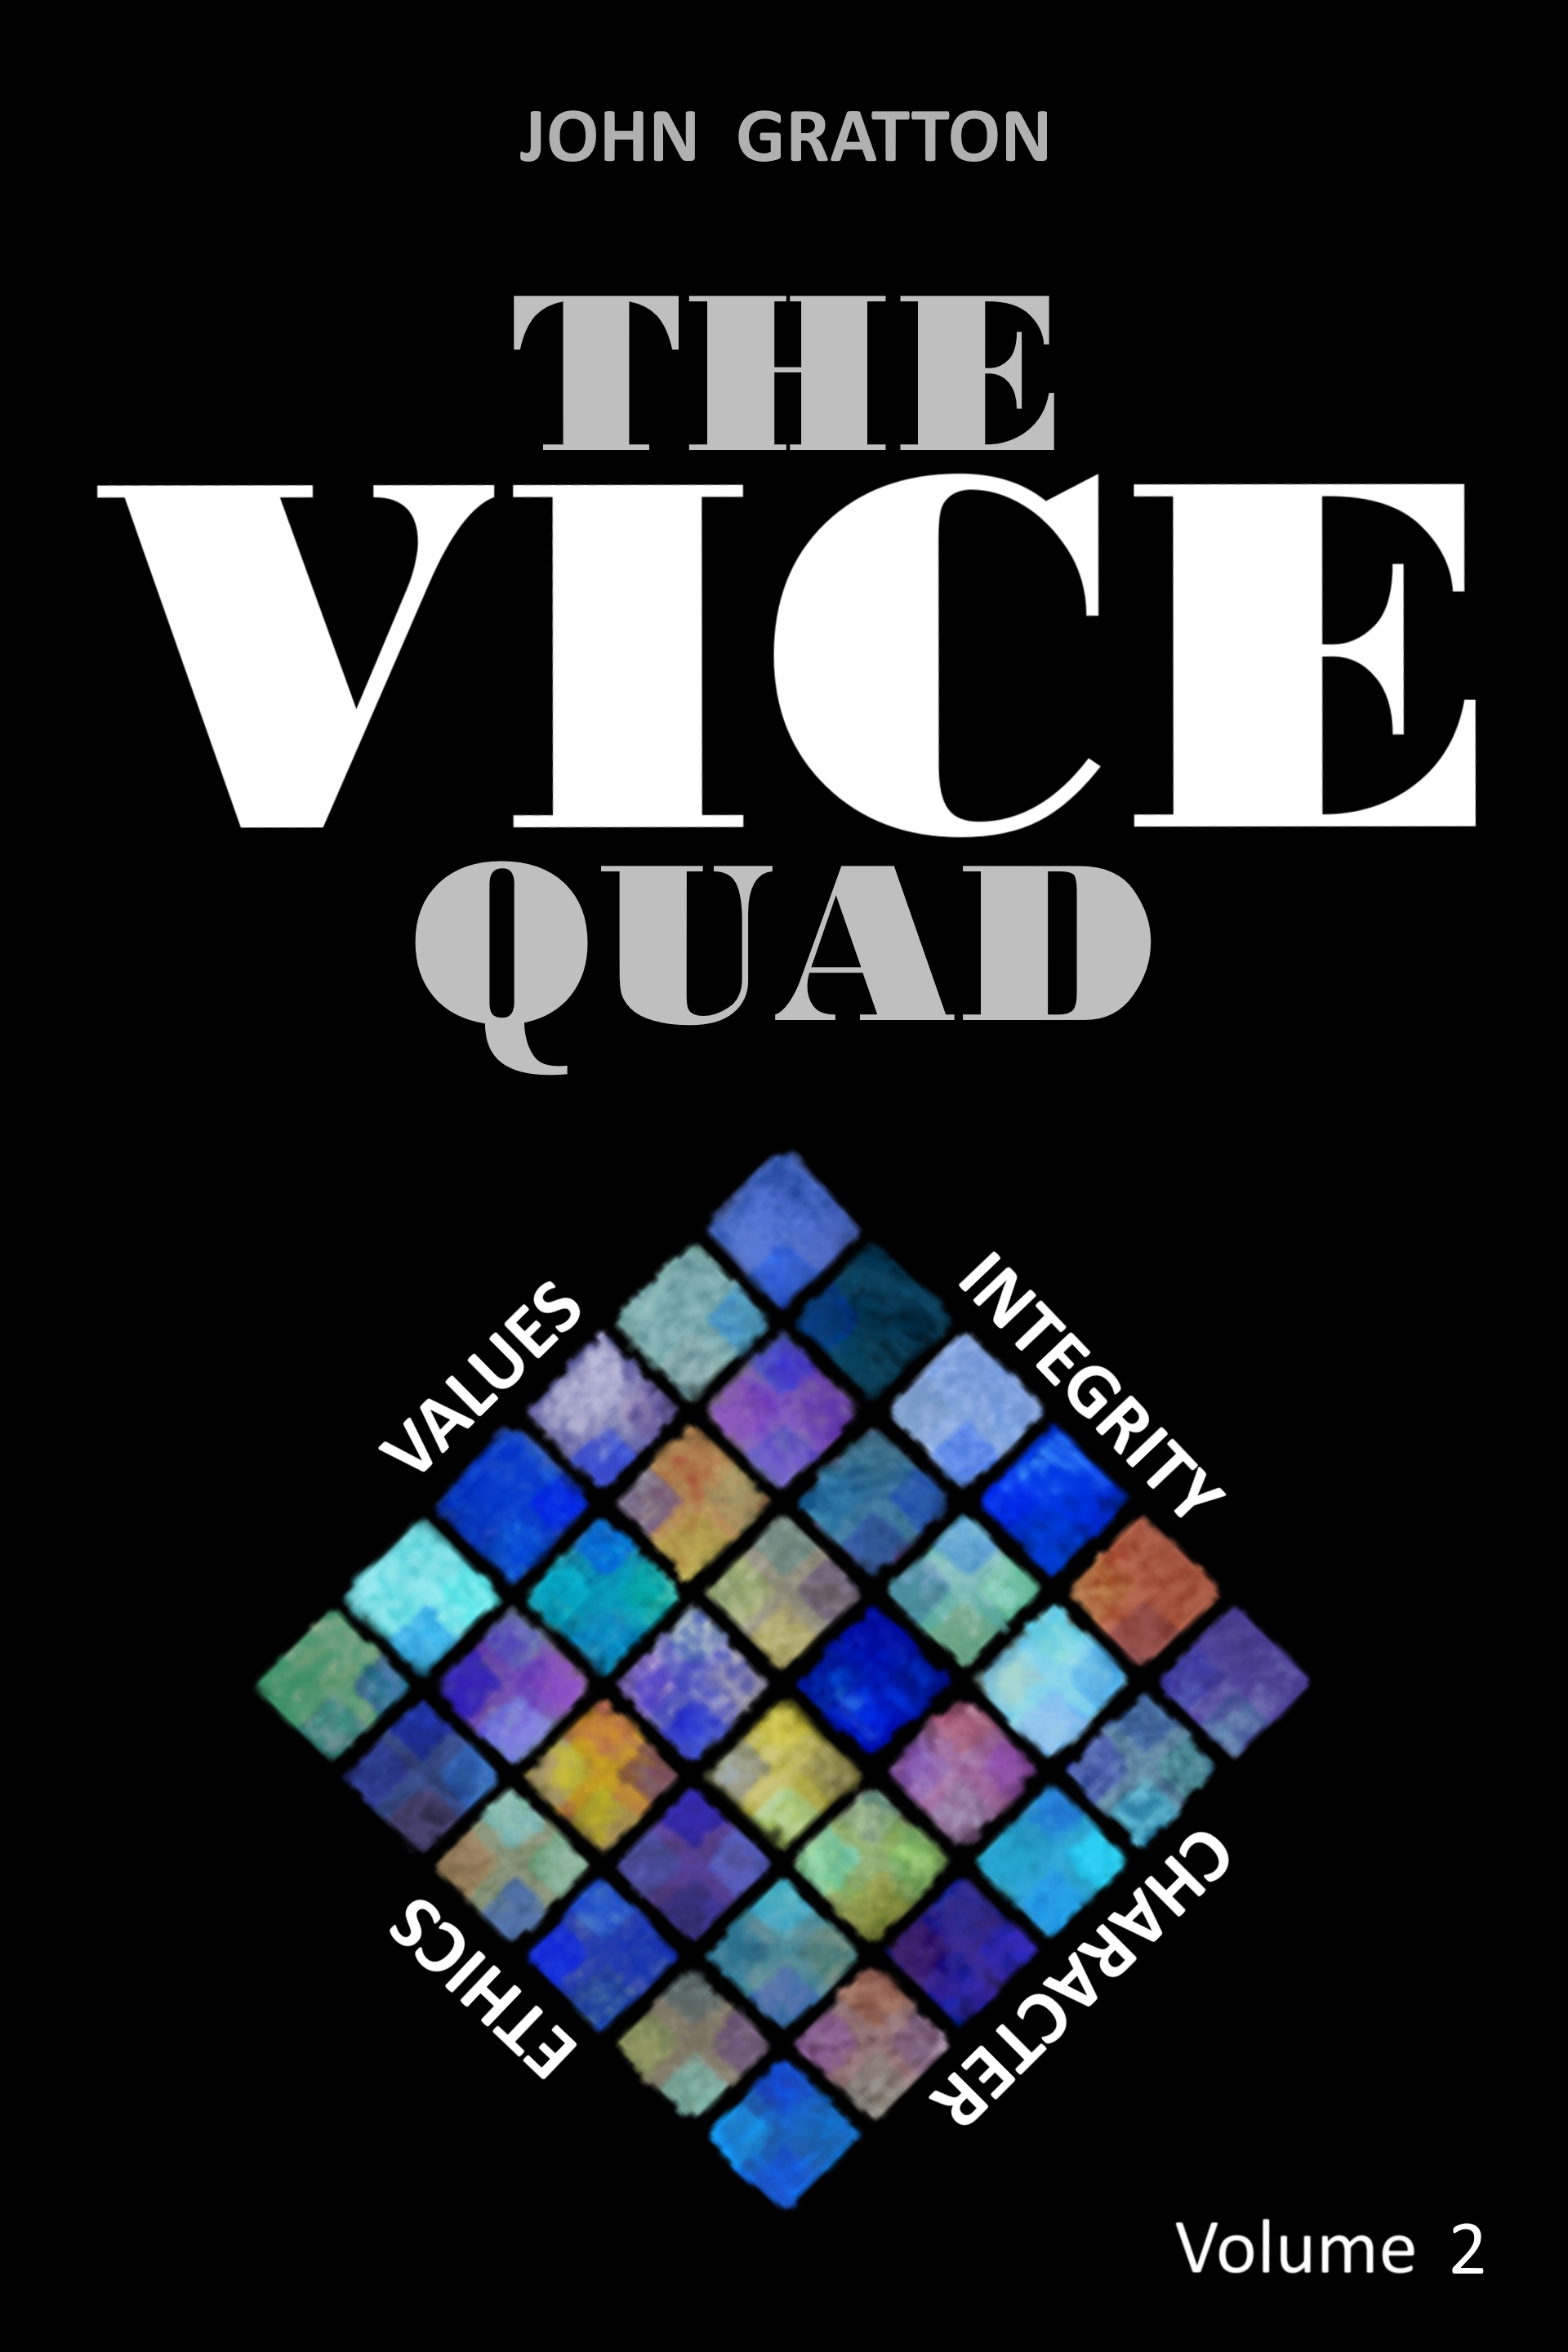 The VICE Quad Volume 2